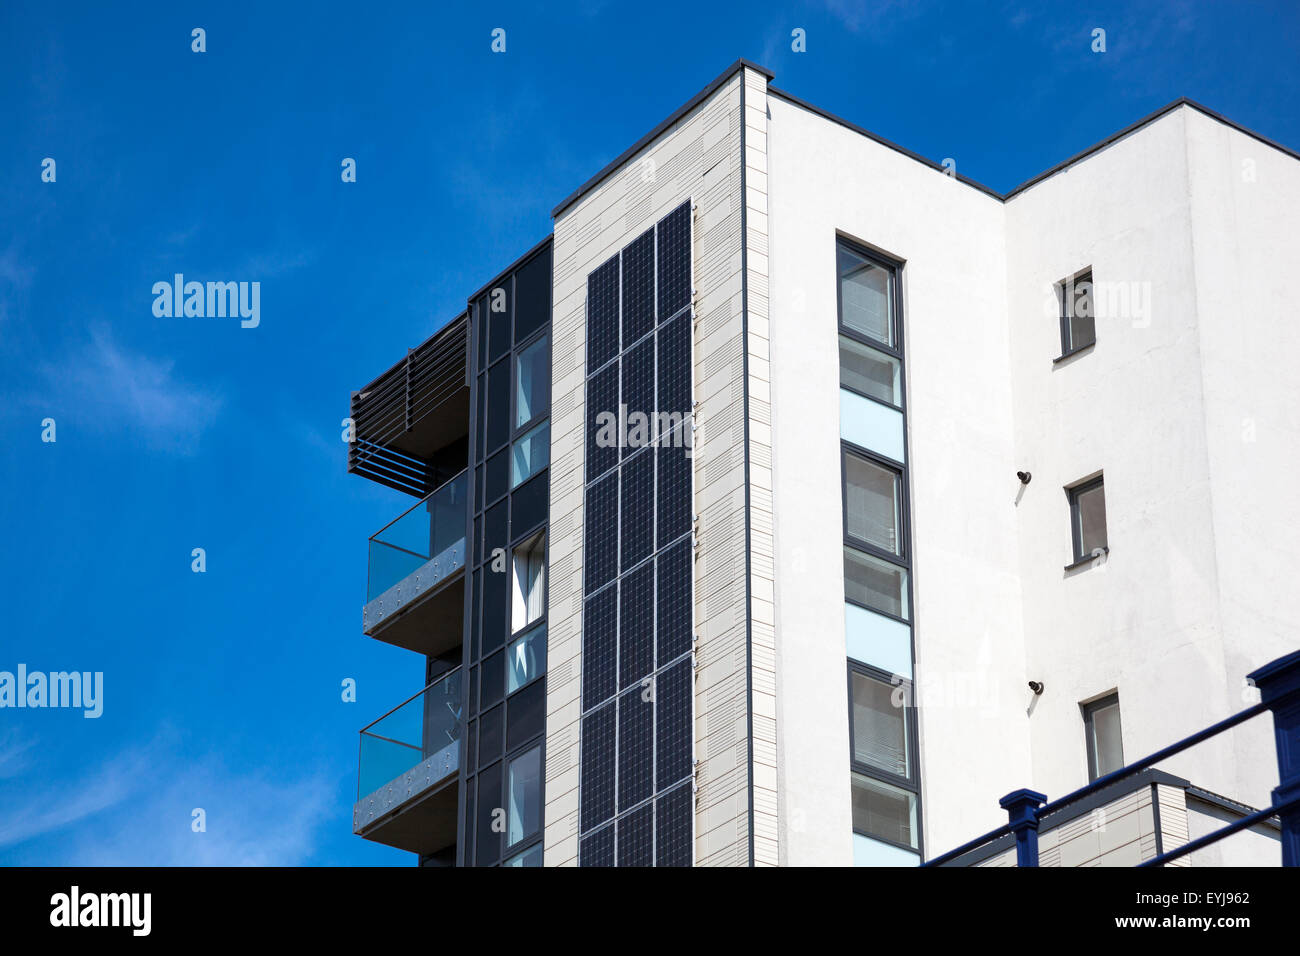 Modern apartment building with solar panels on the side - Stock Image